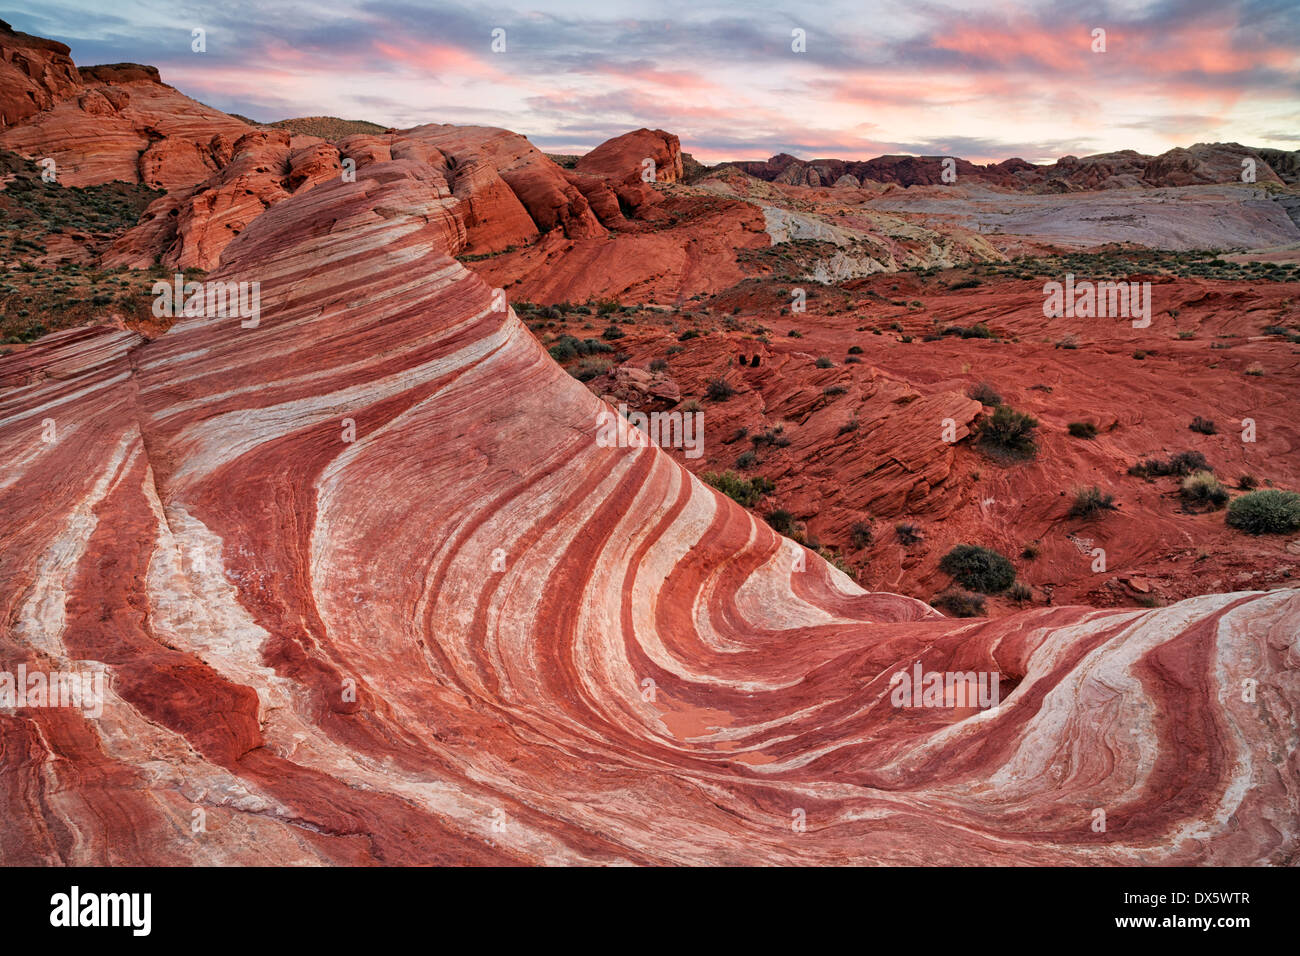 Sunset over the sandstone formation known as the Fire Wave in Nevada's Valley of Fire State Park. Stock Photo